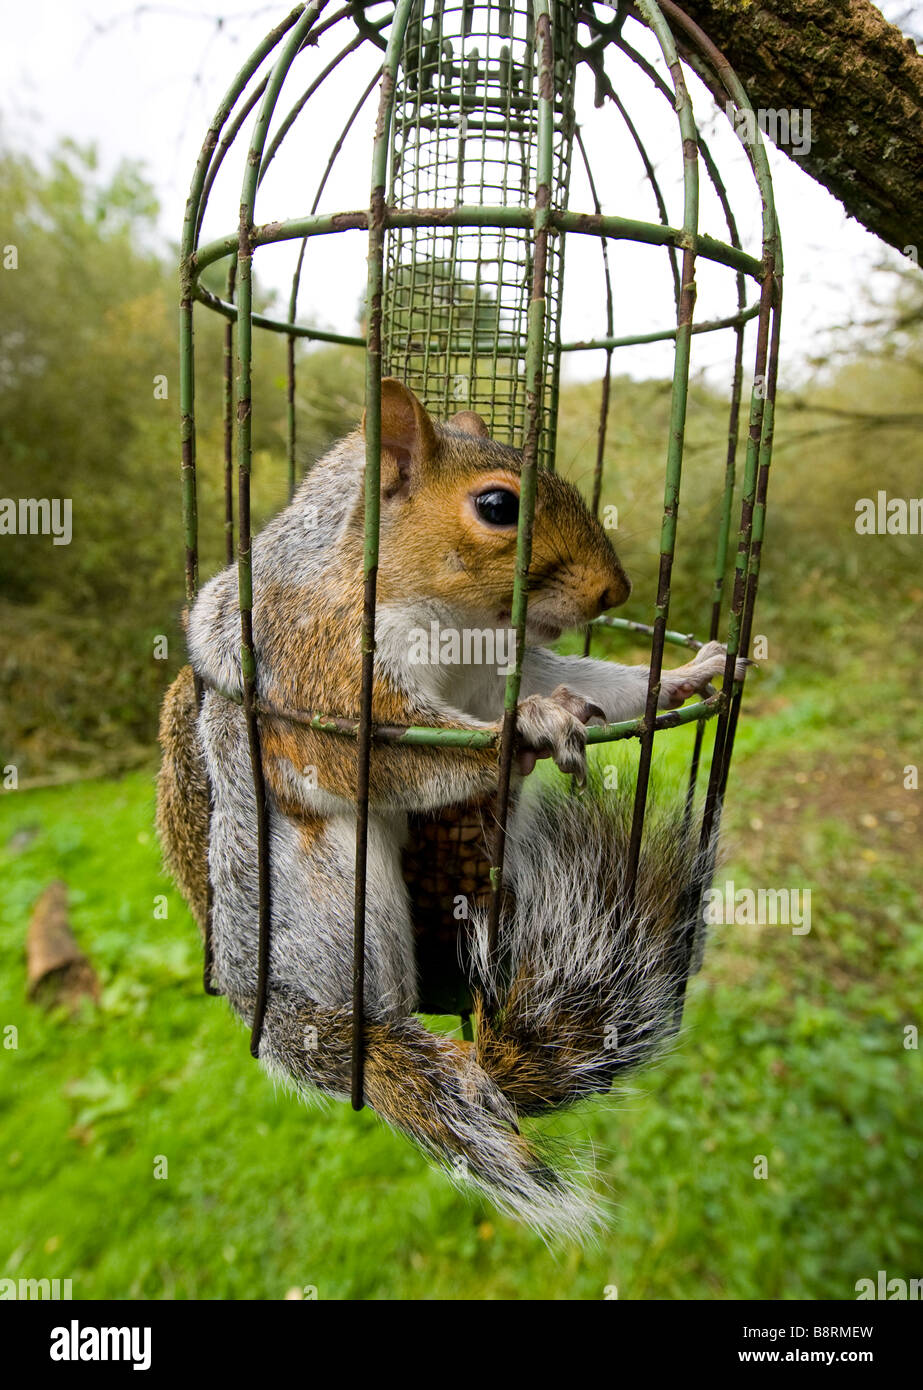 squirrel feeder a september uk to bird stock how inside grey trapped proof photo